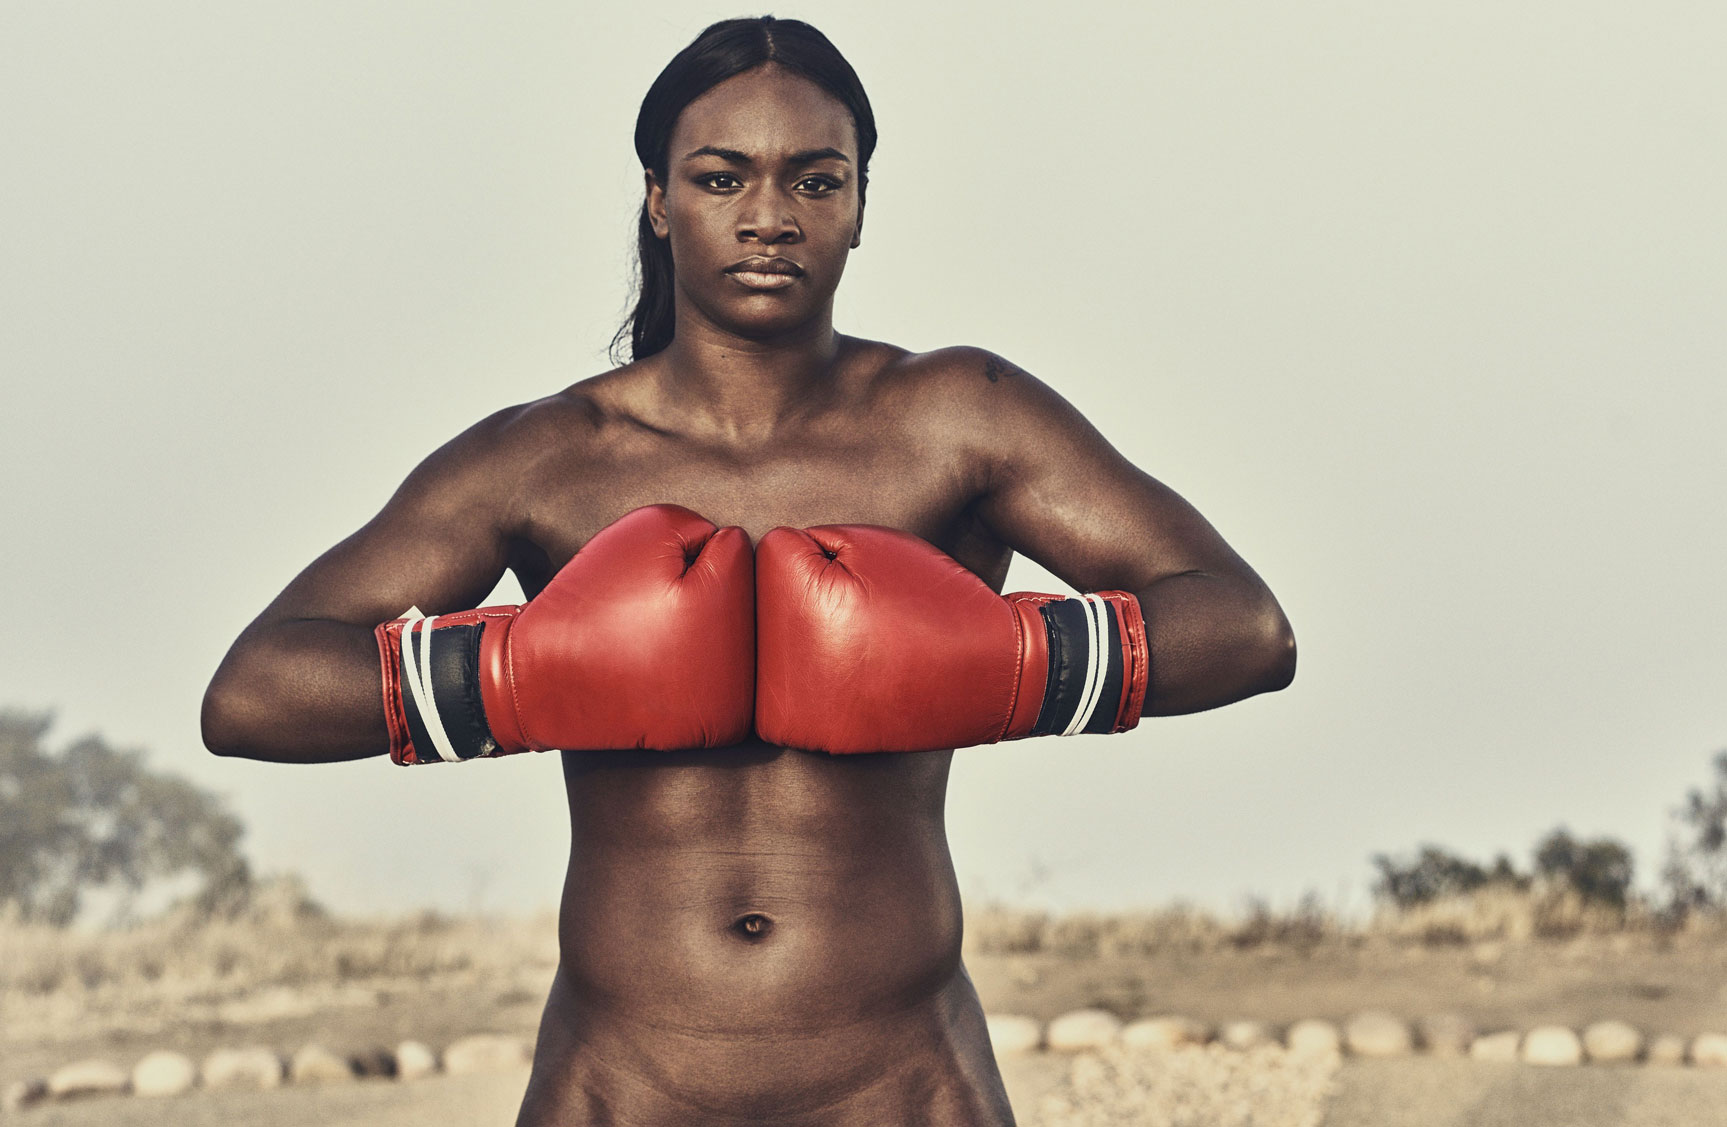 ESPN Magazine The Body Issue 2016 - Claressa Shields / Кларисса Шилдс - Культ тела журнала ESPN